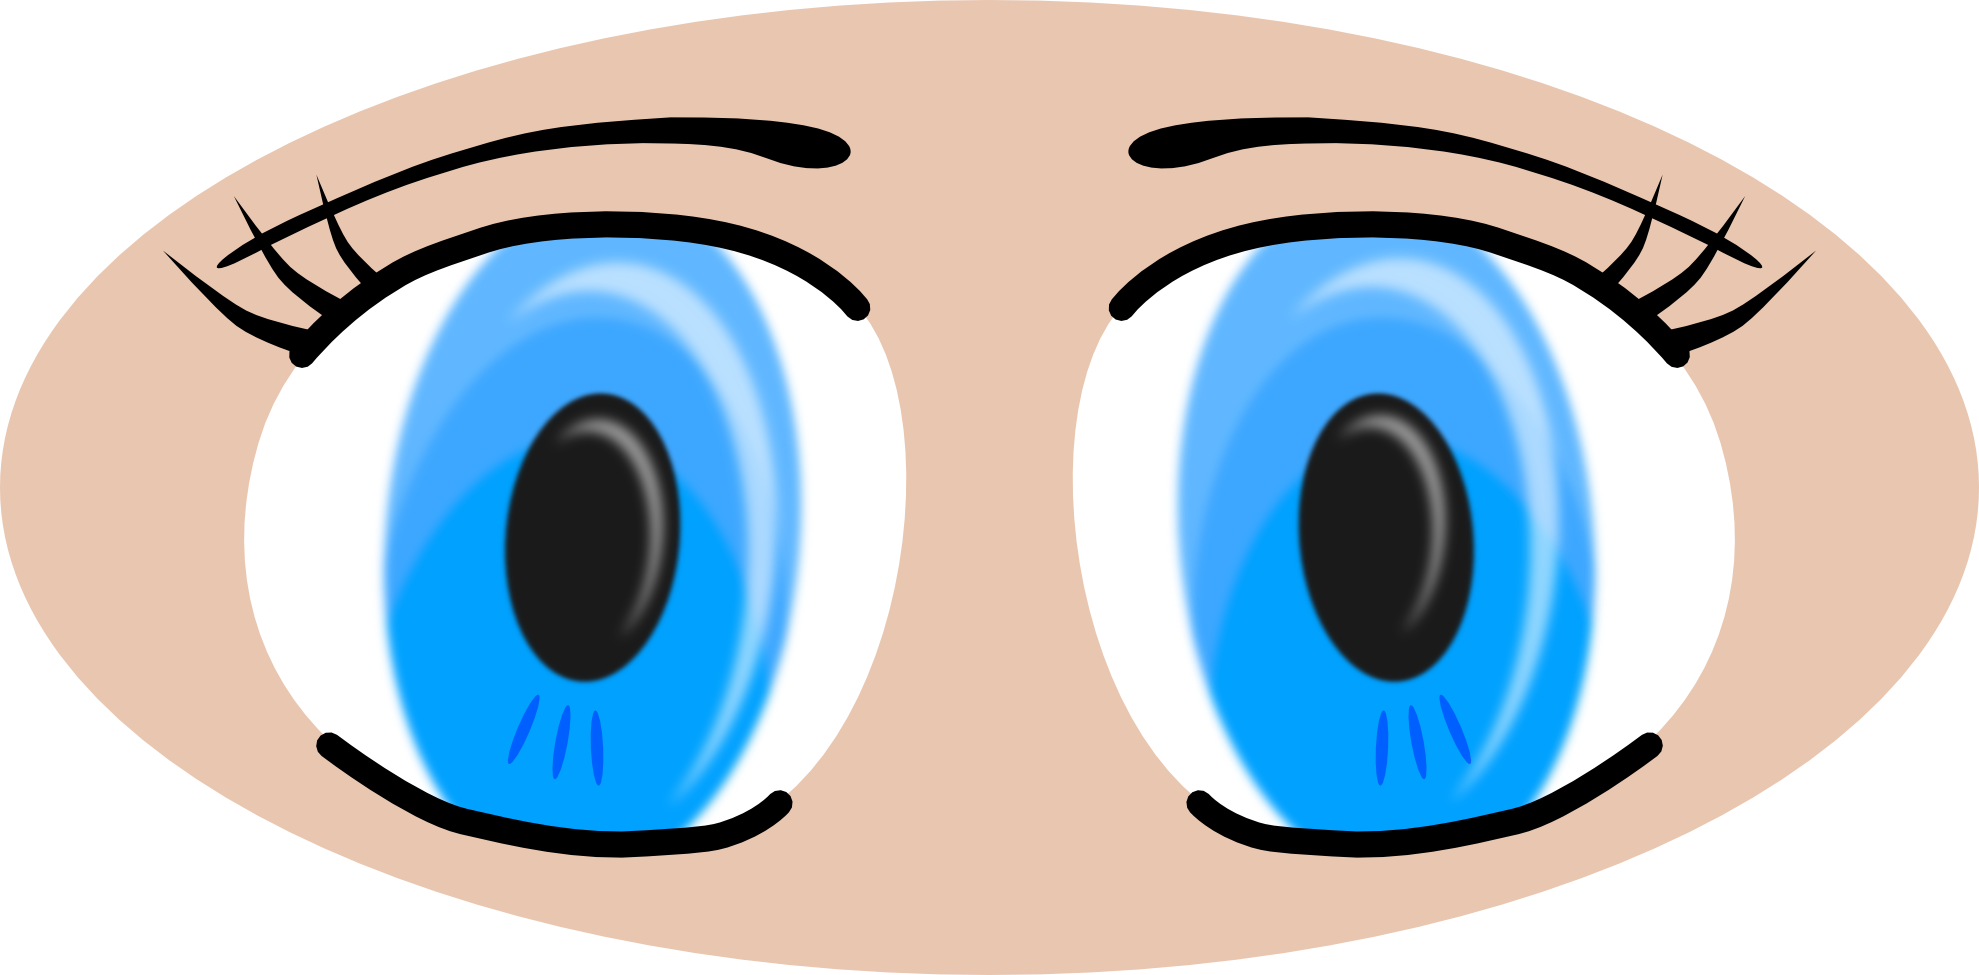 Blue Eyes clipart clipart transparent Clipart Download Blue drawings Blue